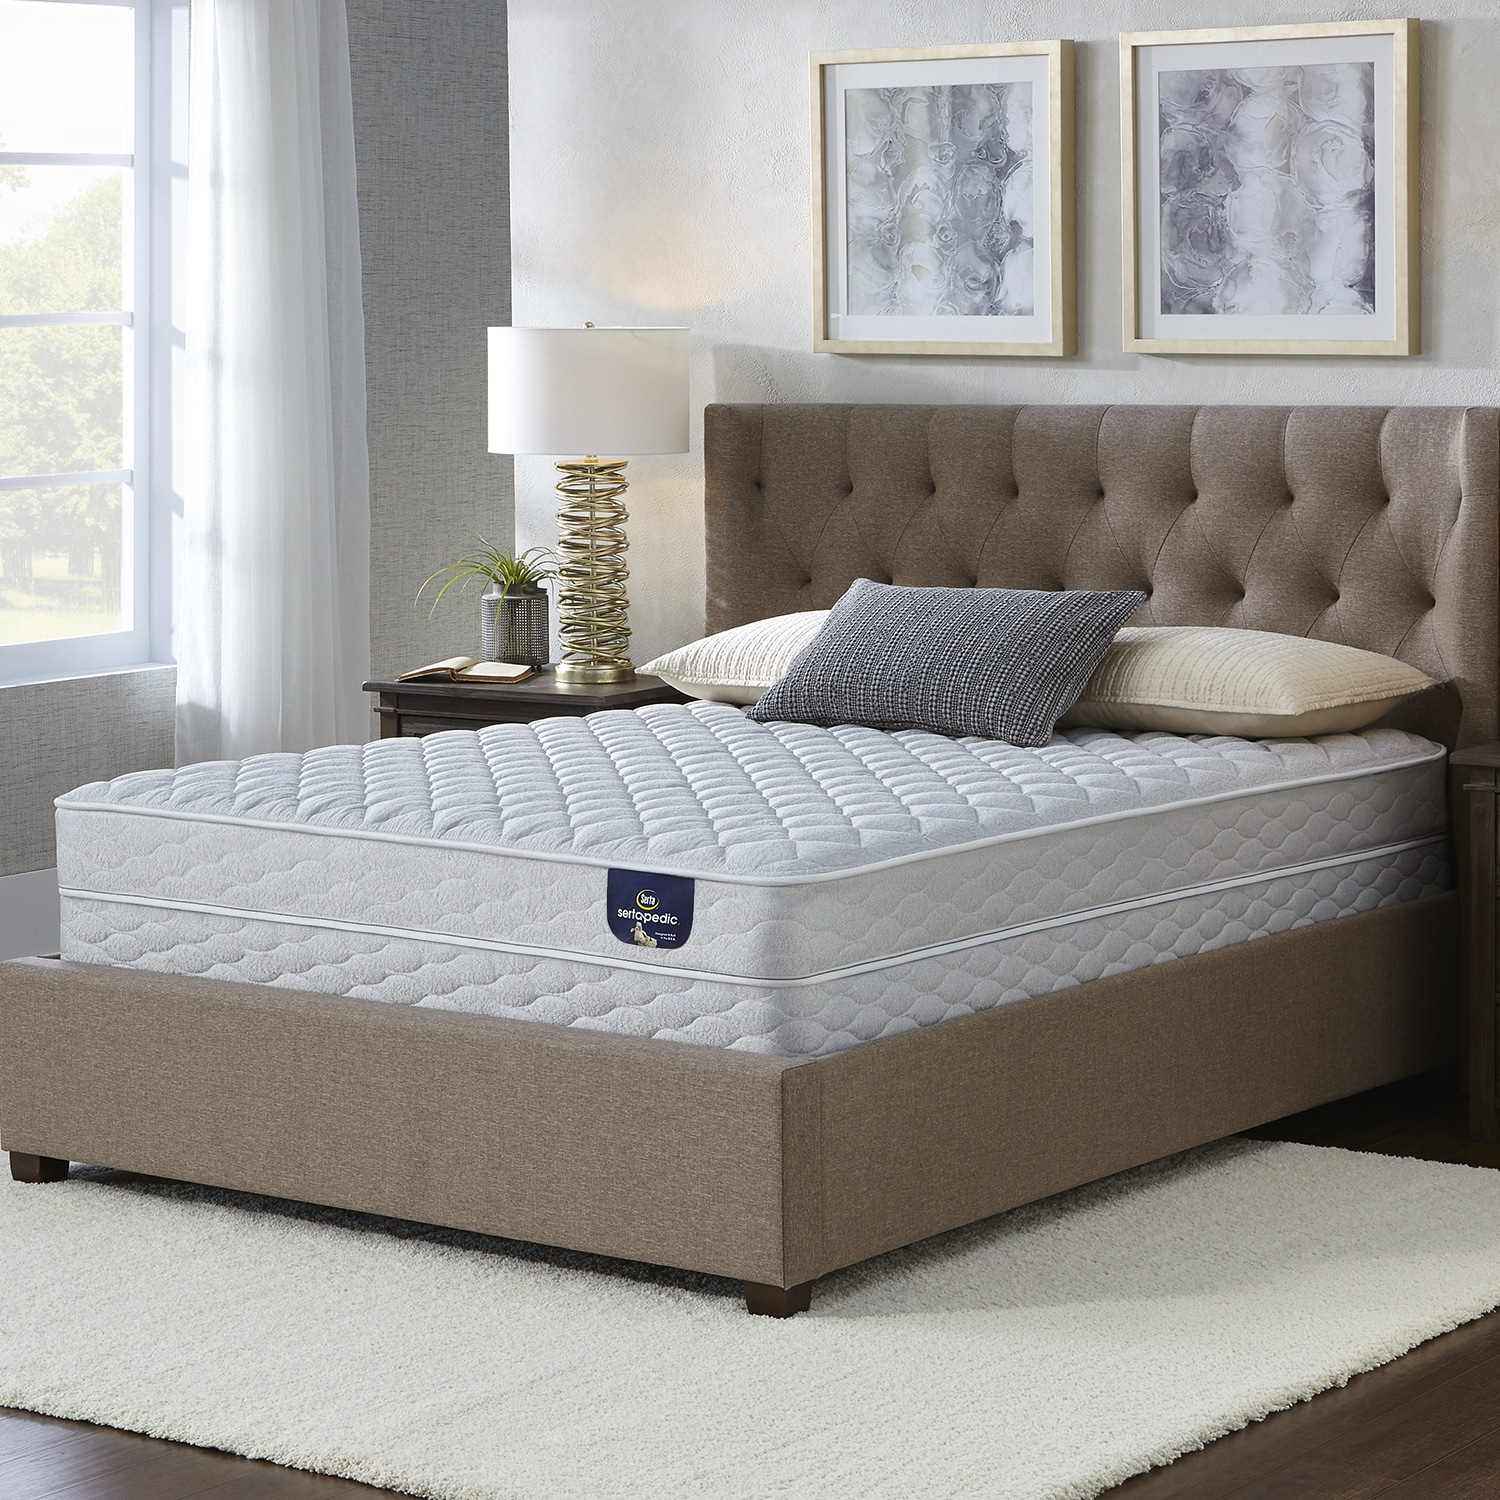 what dimensions are xl centimeters guide sheet measurements k fresh clouds twin comforter bedspread feet quilt together australia bed mattress cheap headboard vs cushty sizes r spread queen with frame nine a jolly size average